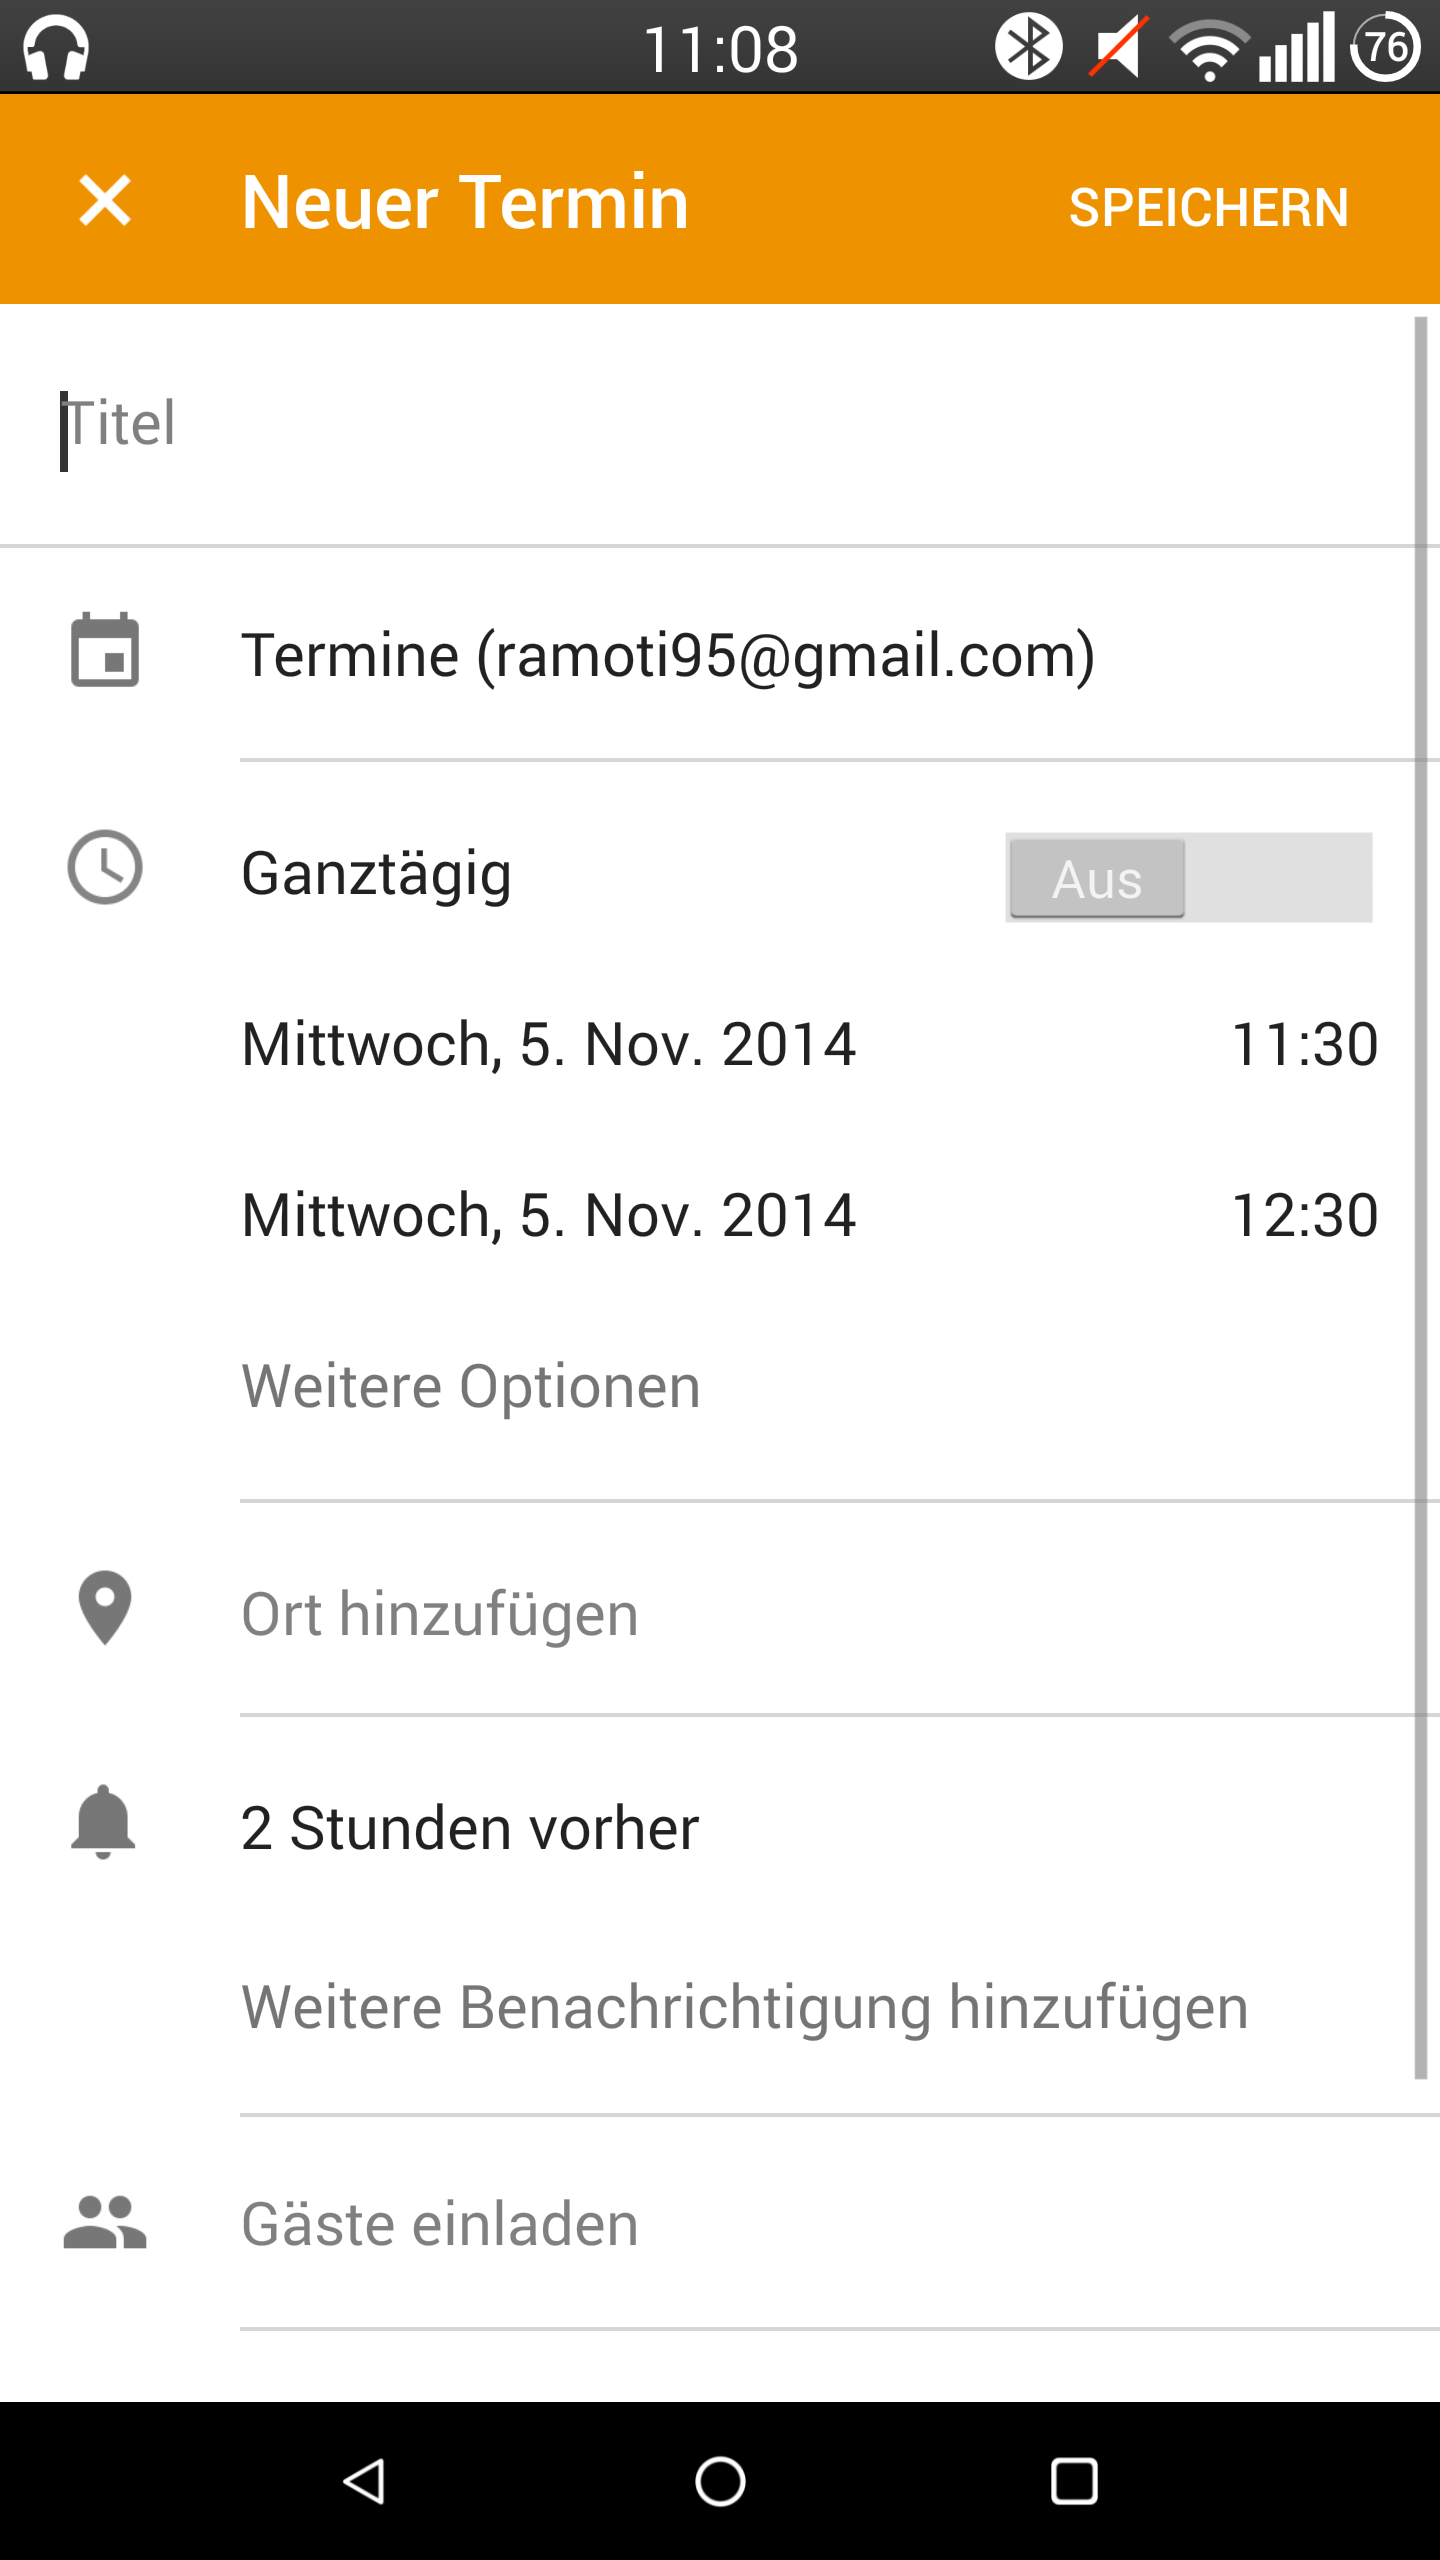 download gmail apk for android 4.0